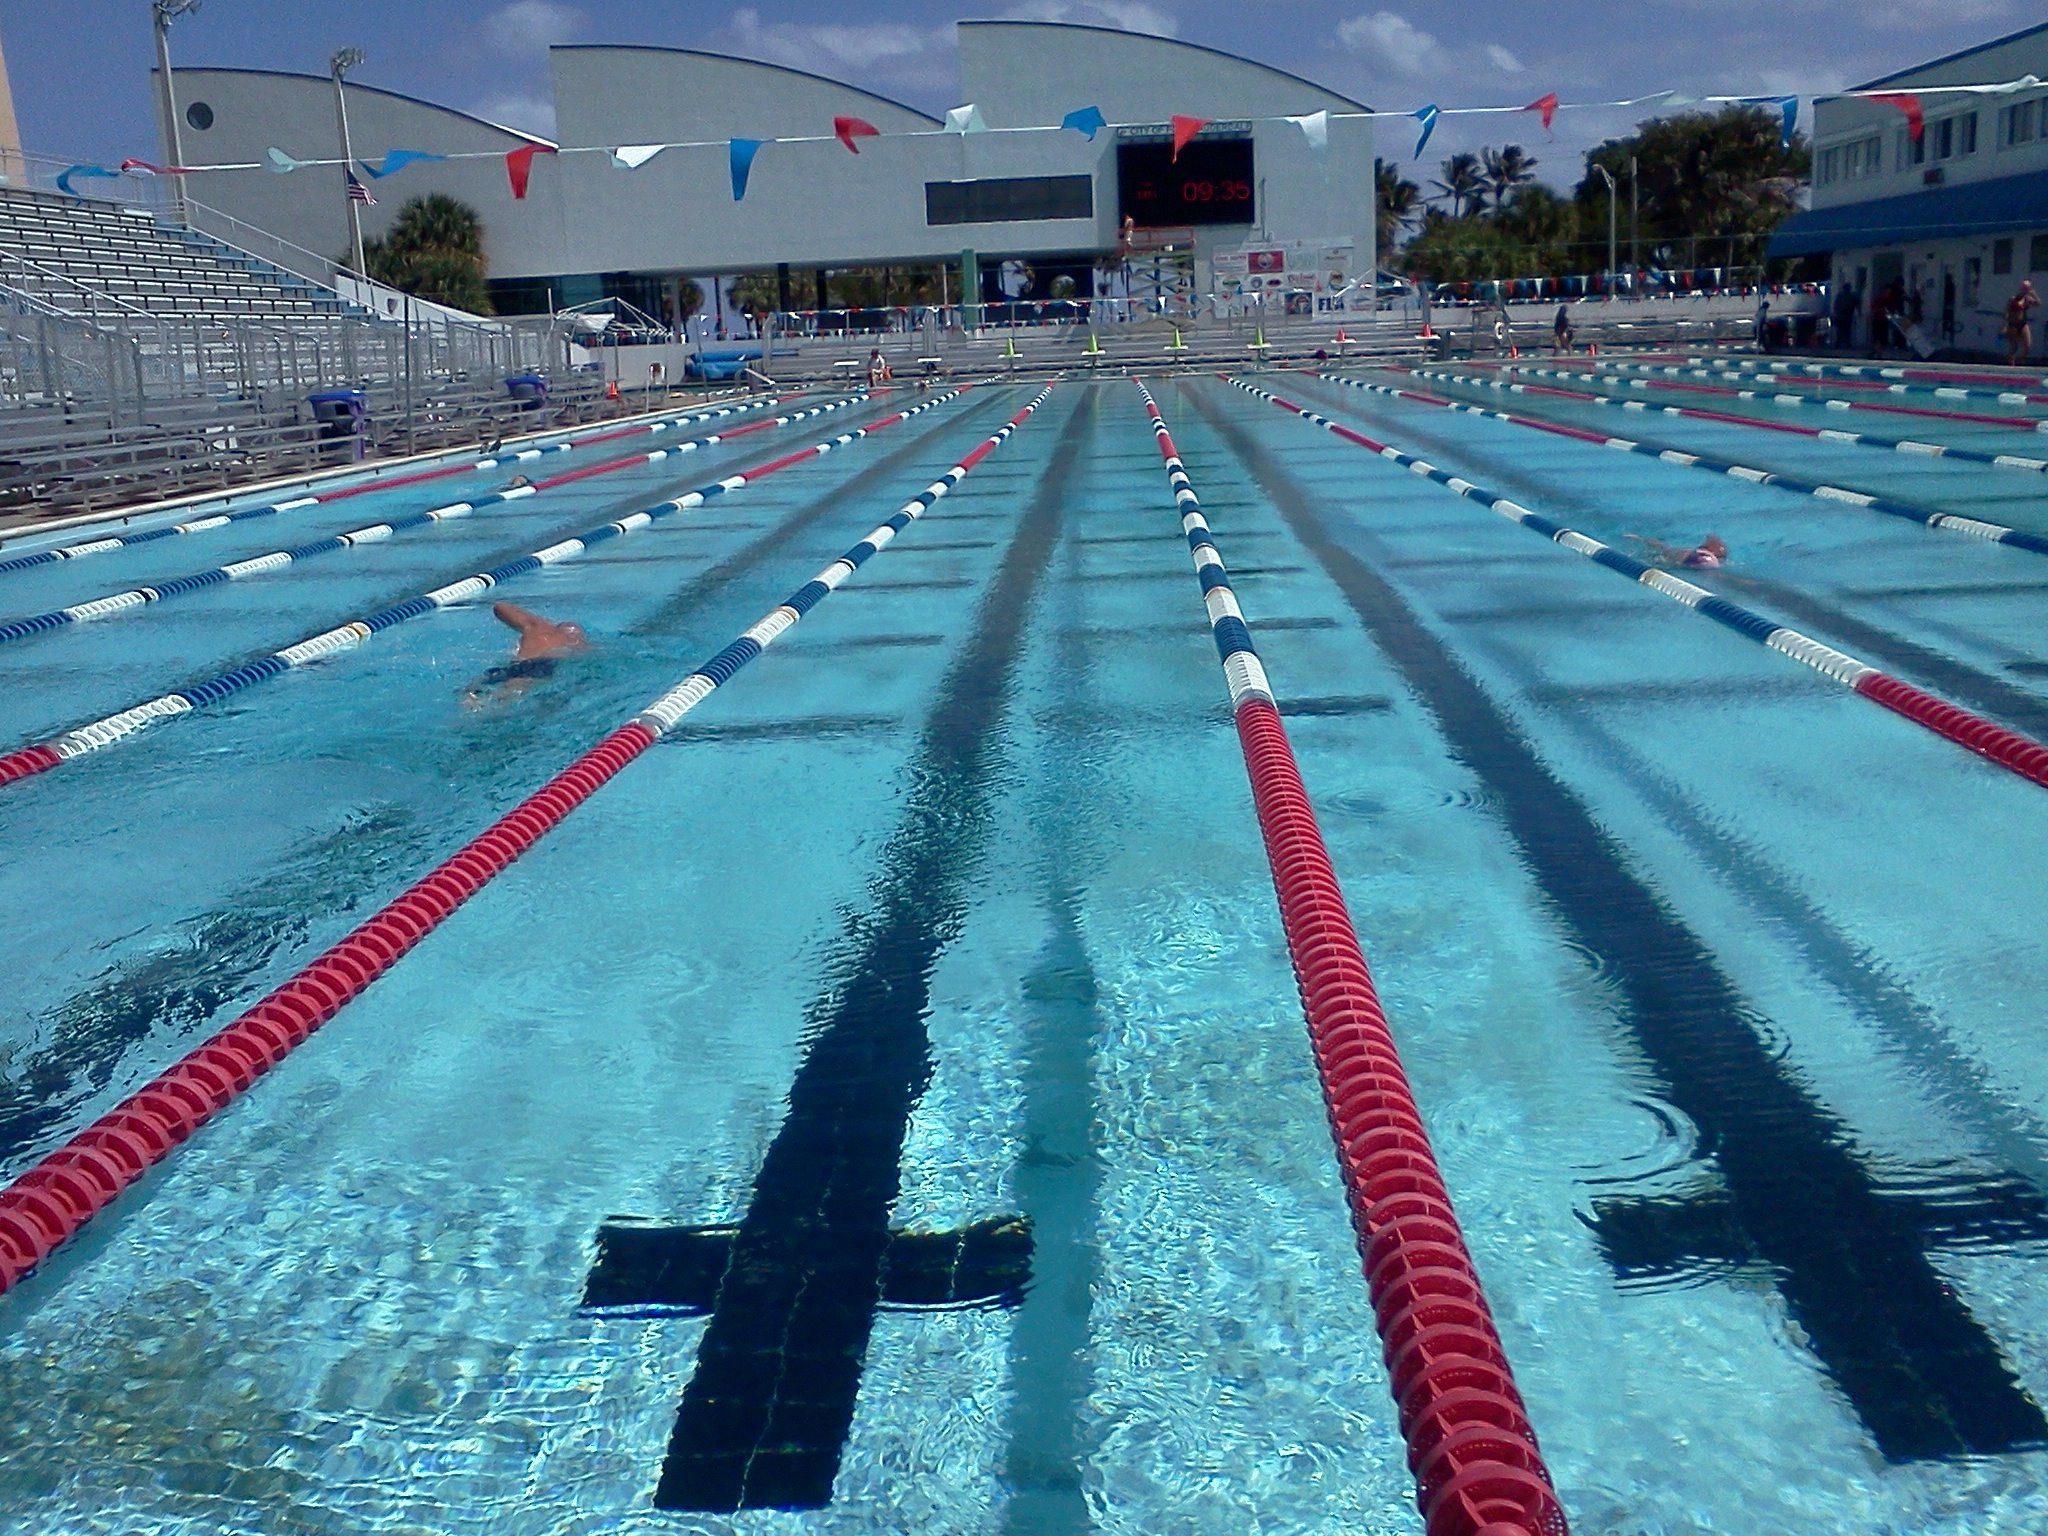 Swimming hall of fame ft lauderdale for International swimming hall of fame pool